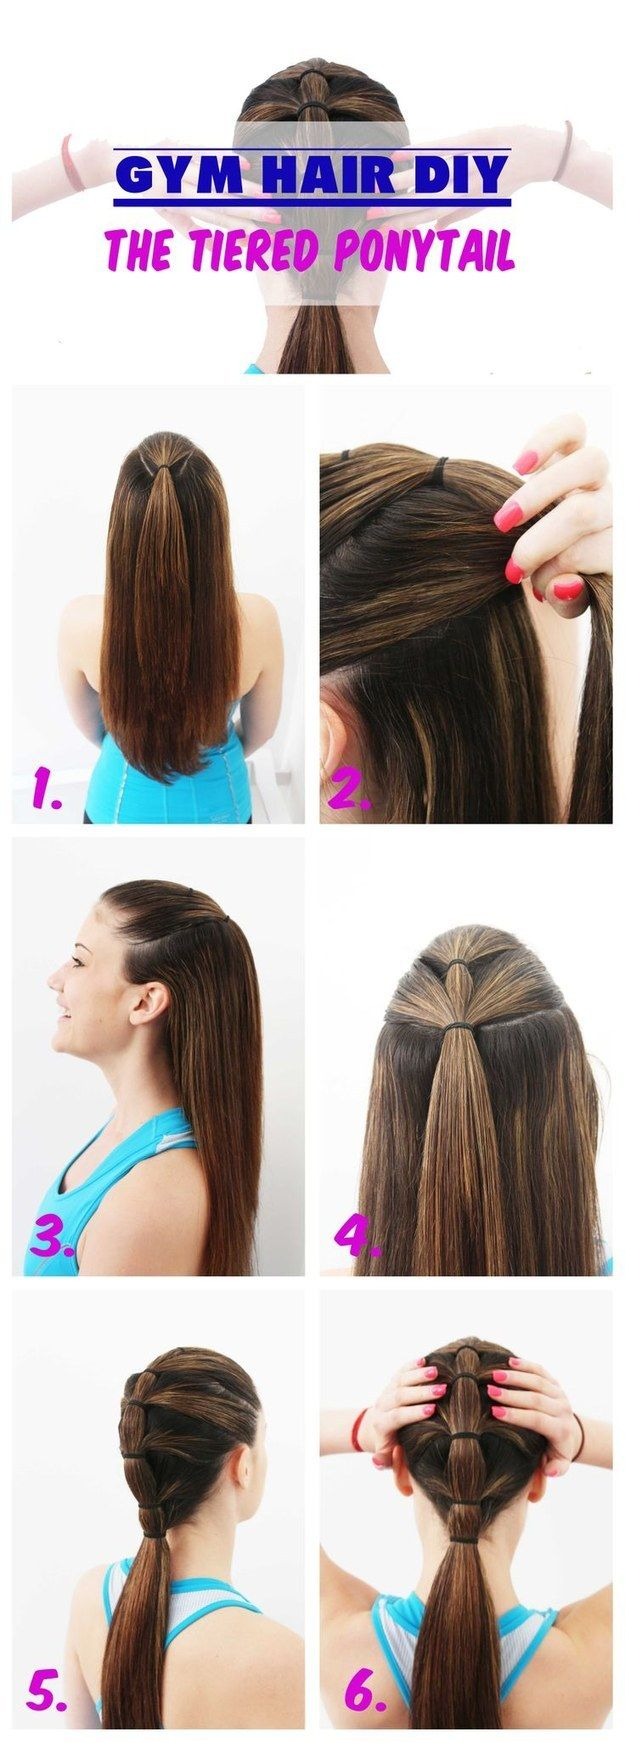 A tiered ponytail will keep everything in its rightful place.   18 Ingenious Hair Hacks For The Gym